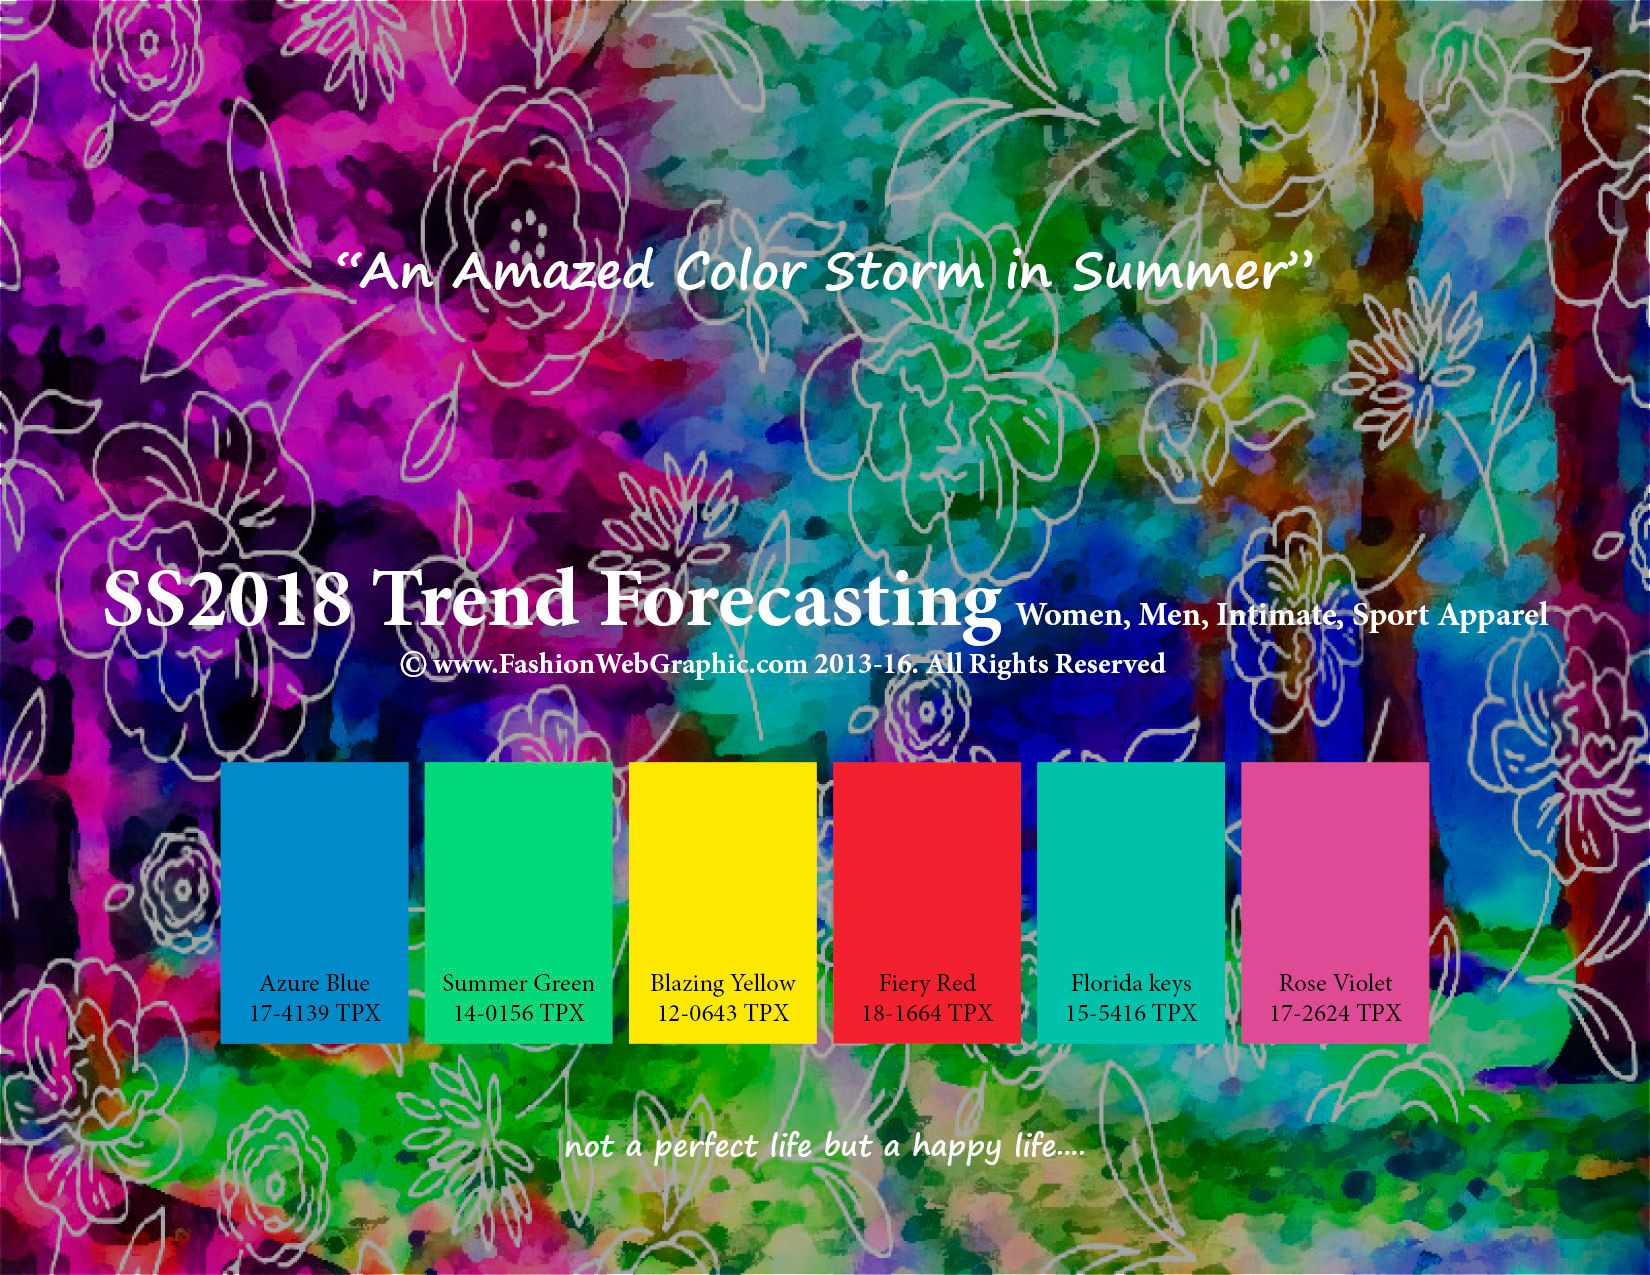 research on colors in sprig summer A lifestyle trend book that forecasts trends for the seasons of spring and summer in 2018.